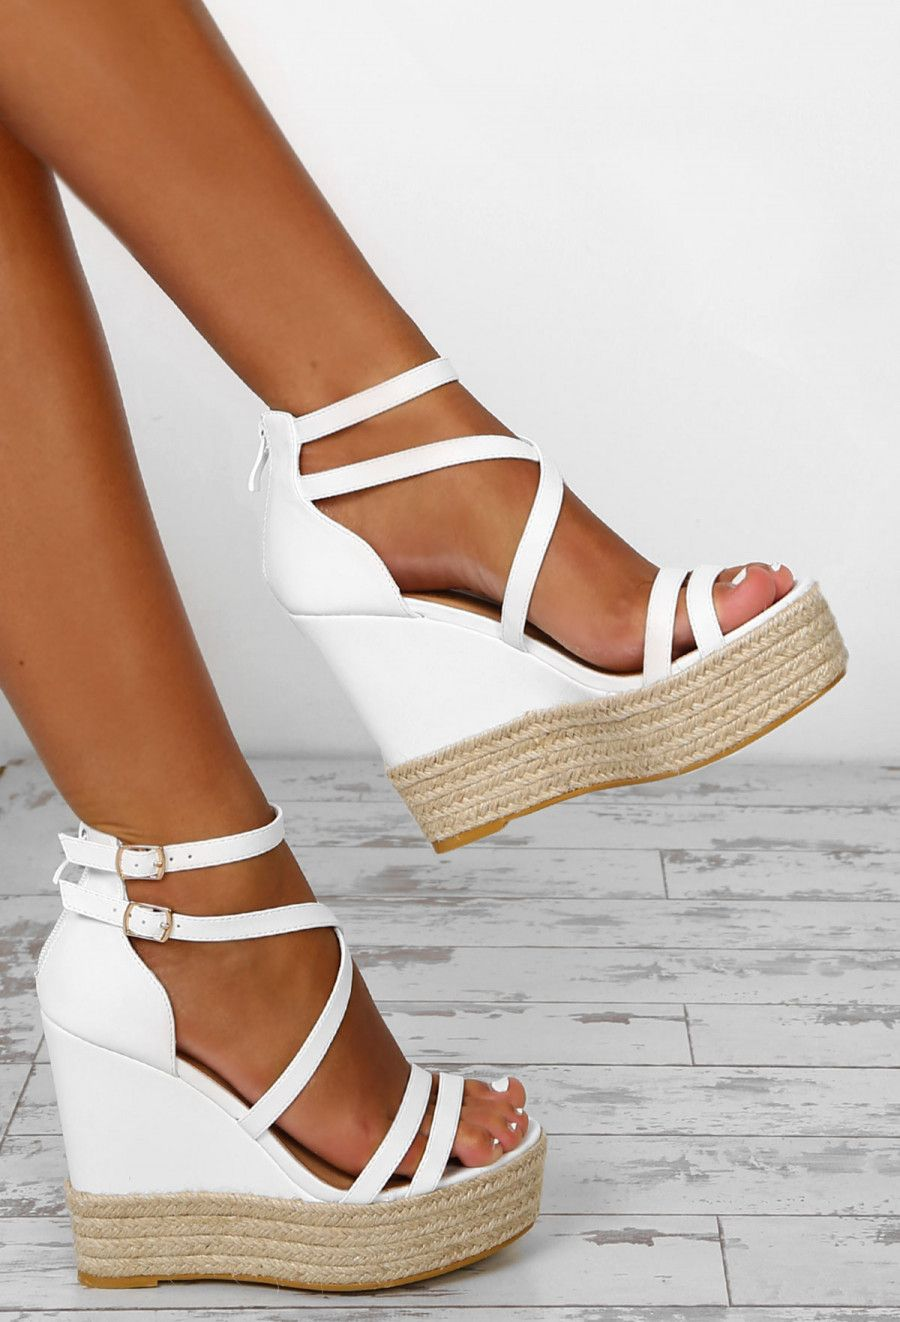 778e8f67e Sundance White Platform Wedges - UK 4 | Shoes ♡ | Cute wedges shoes ...